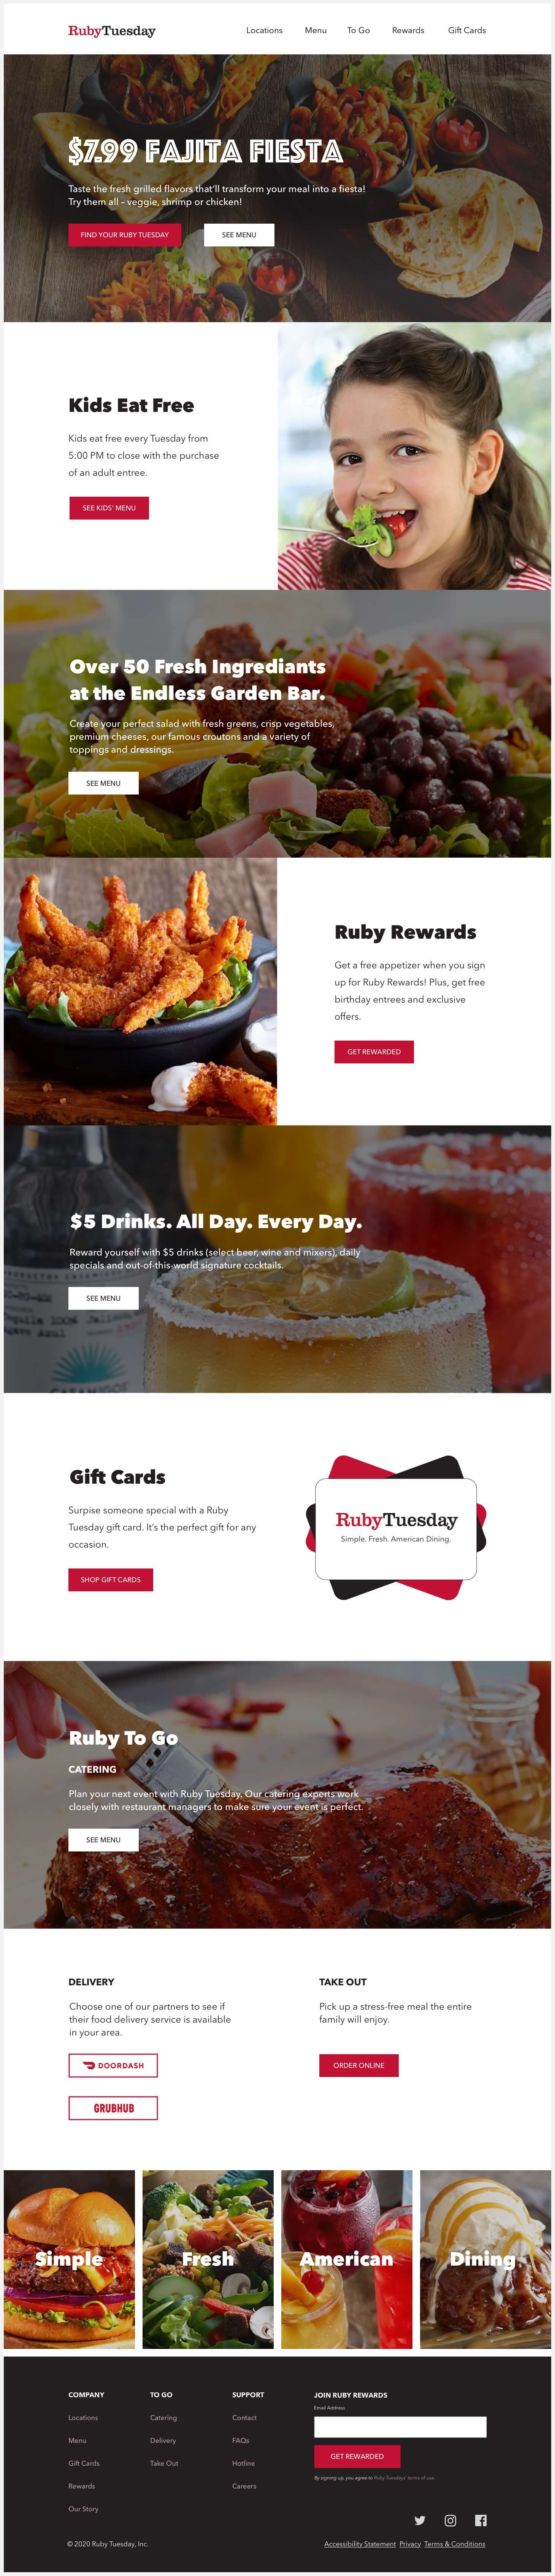 Ruby Tuesday's redesigned website.